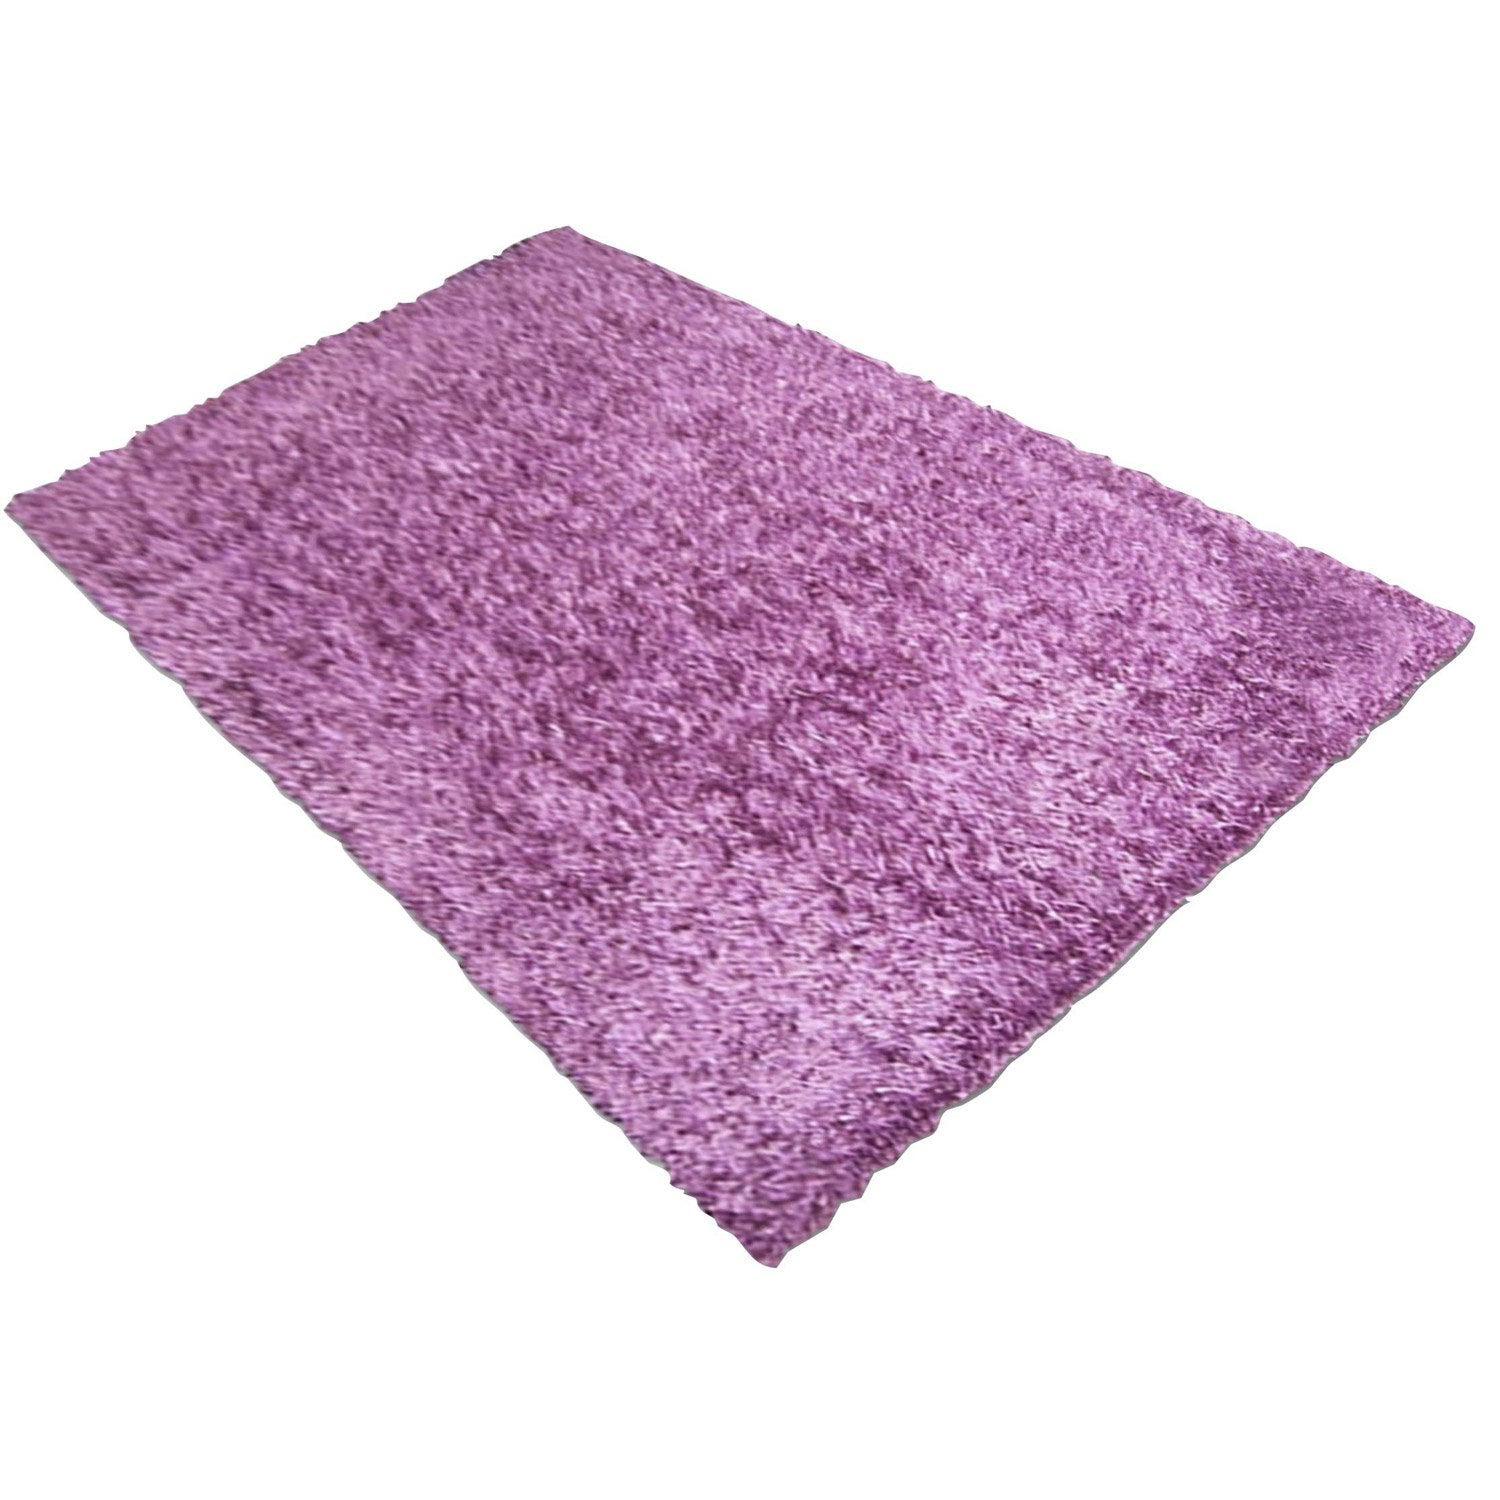 Tapis violet shaggy lilou x cm leroy merlin - Tapis shaggy rose clair ...